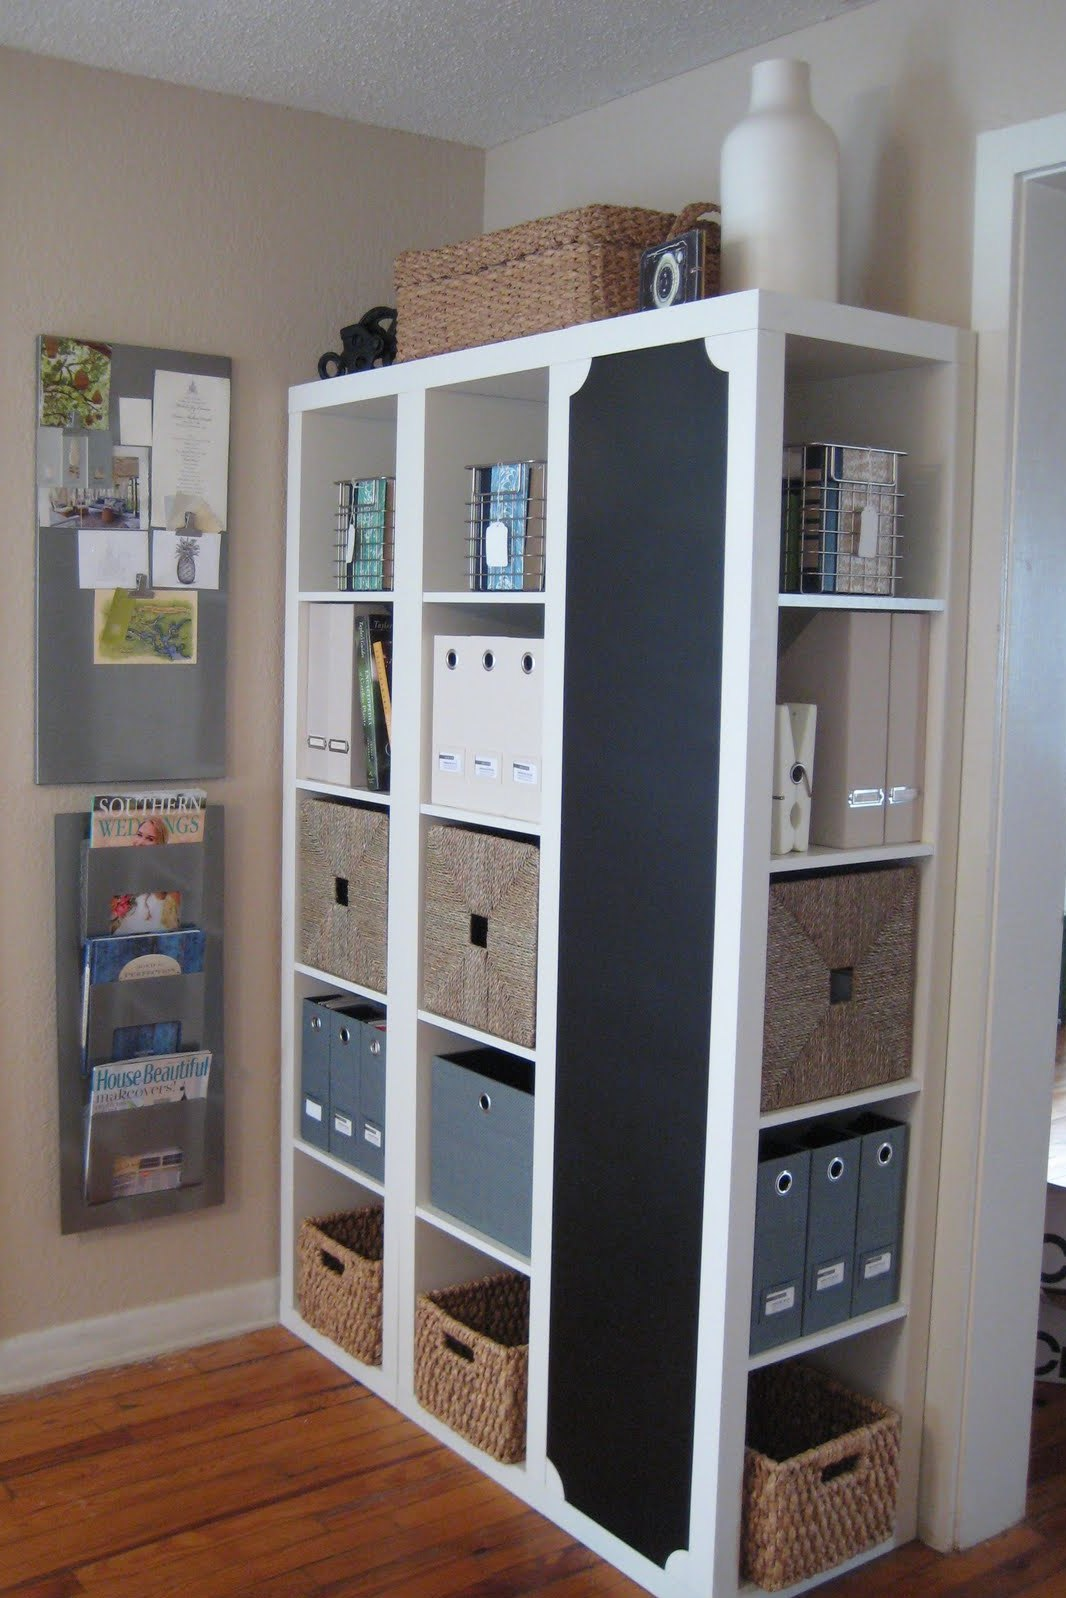 Small closet make-over: bedroom ideas, closet, organizing, painting, storage ideas s 16 brilliant ways to squeeze much more into your closet, closet, organizing, storage ideas, Rethink your direction for more efficiency Make The Most Out of a Small Closet by rearranging and painting. Shelves on one end, 2 hanging rails on the other end.